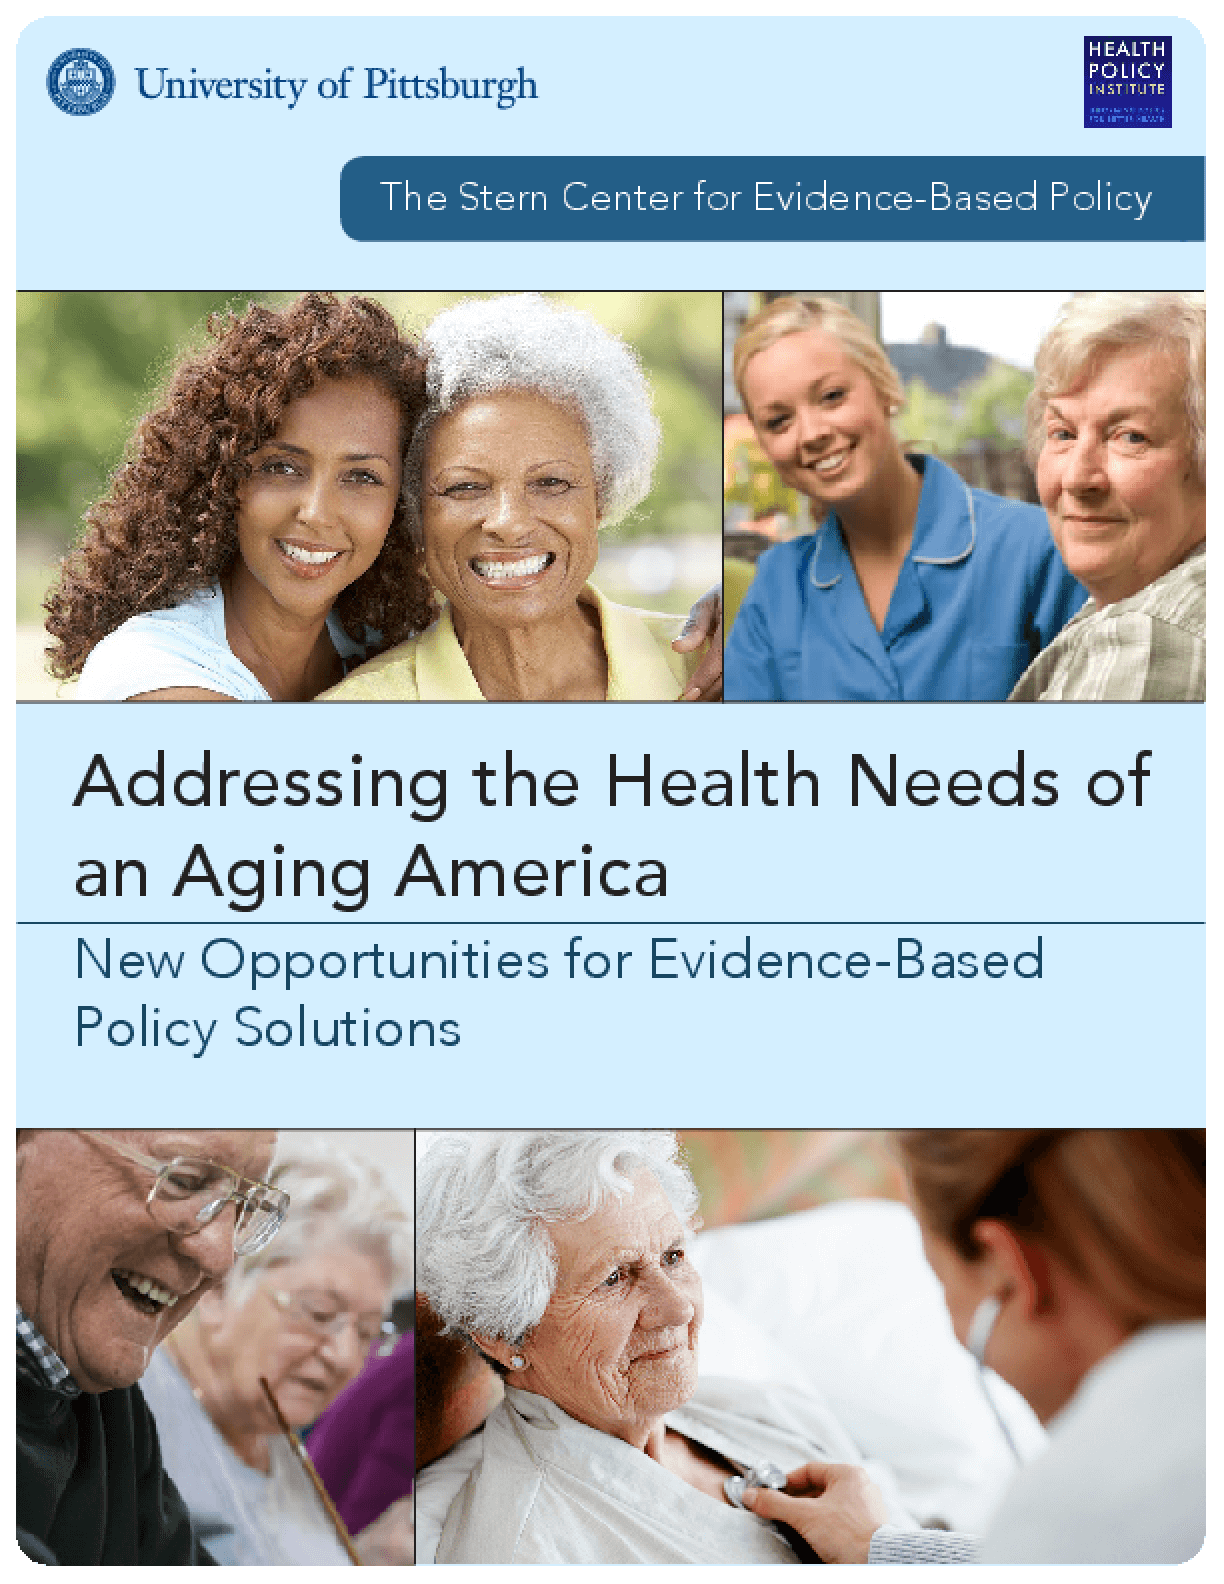 Addressing the Health Needs of an Aging America: New Opportunities for Evidence-Based Policy Solutions